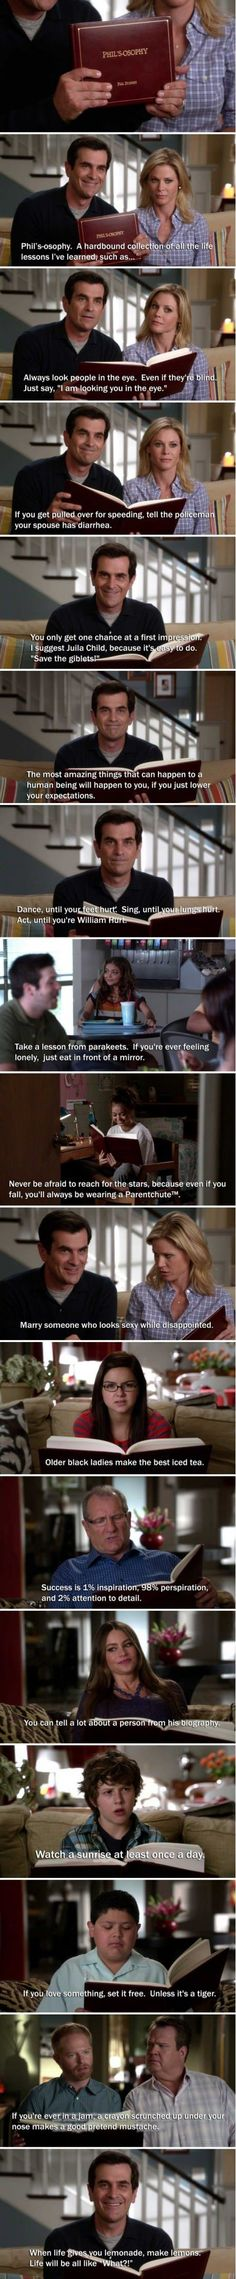 Phil's-osophy. Modern Family.